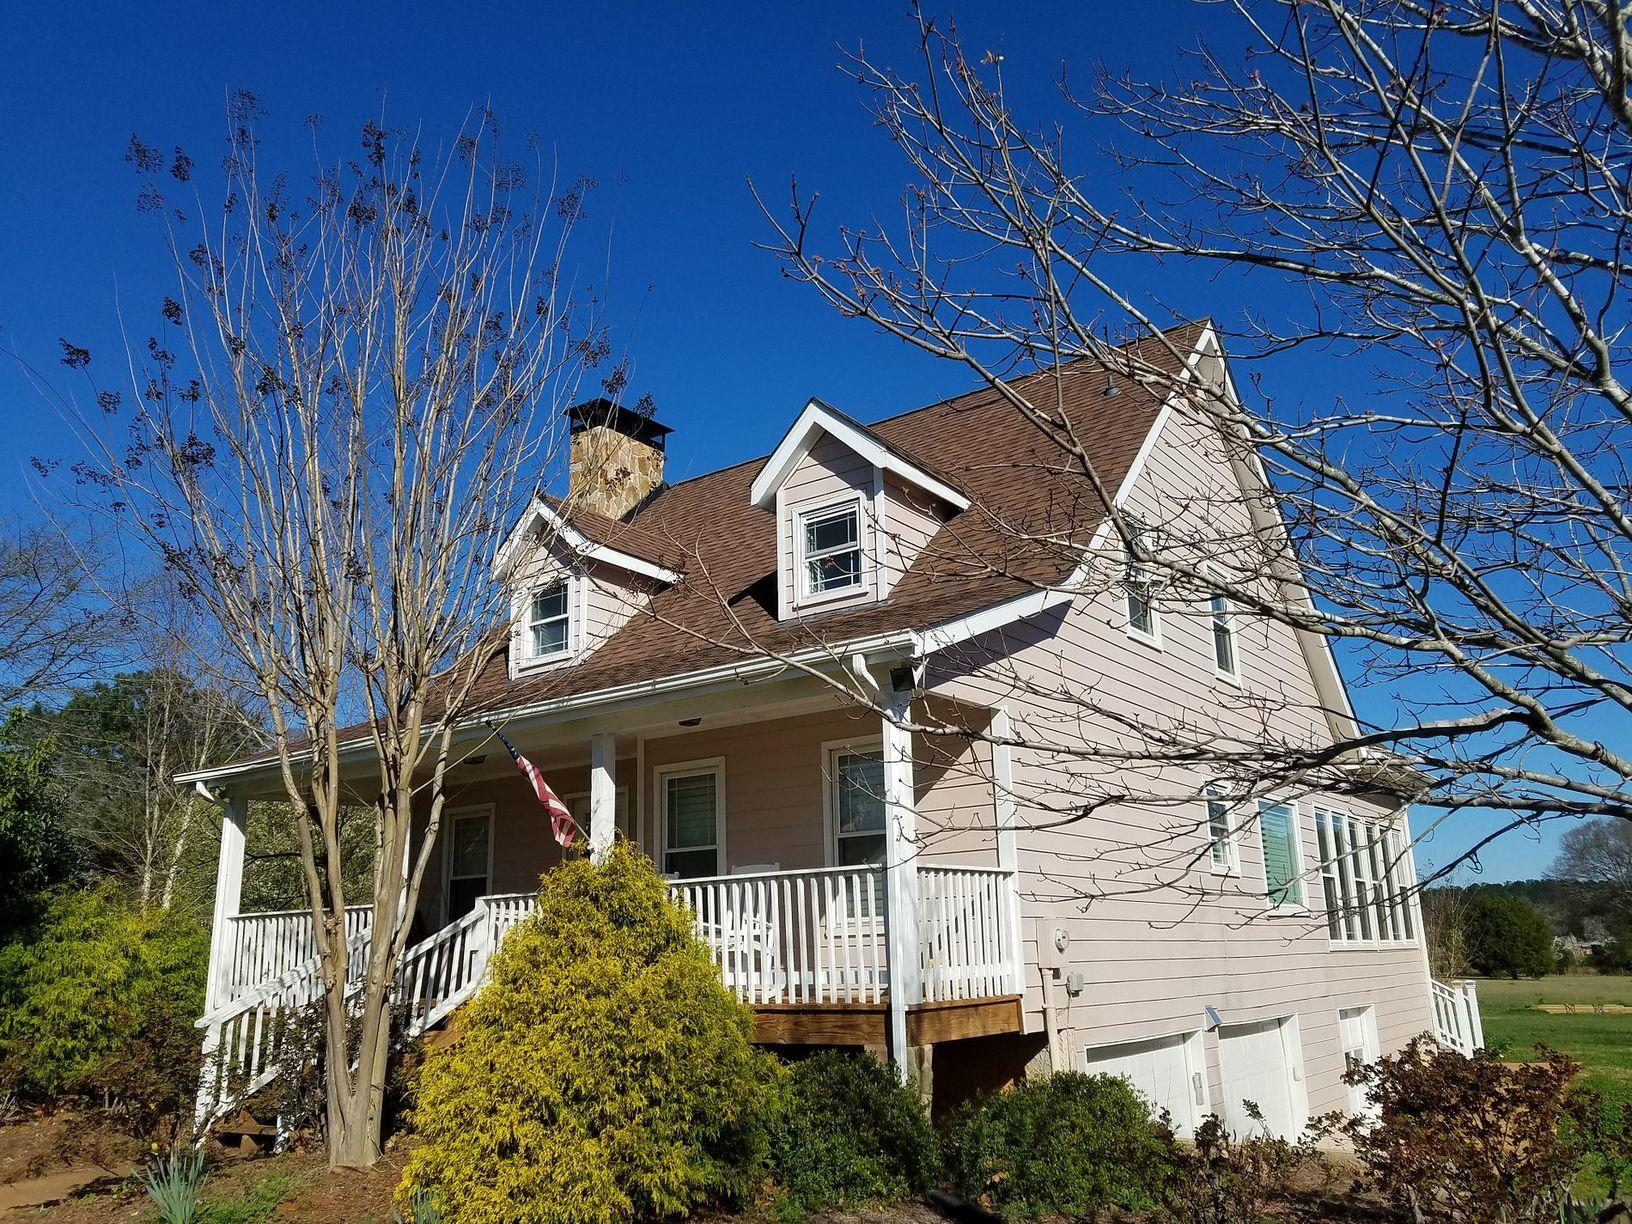 Hardie Siding Replacement in Fayetteville, Georgia - Before Photo